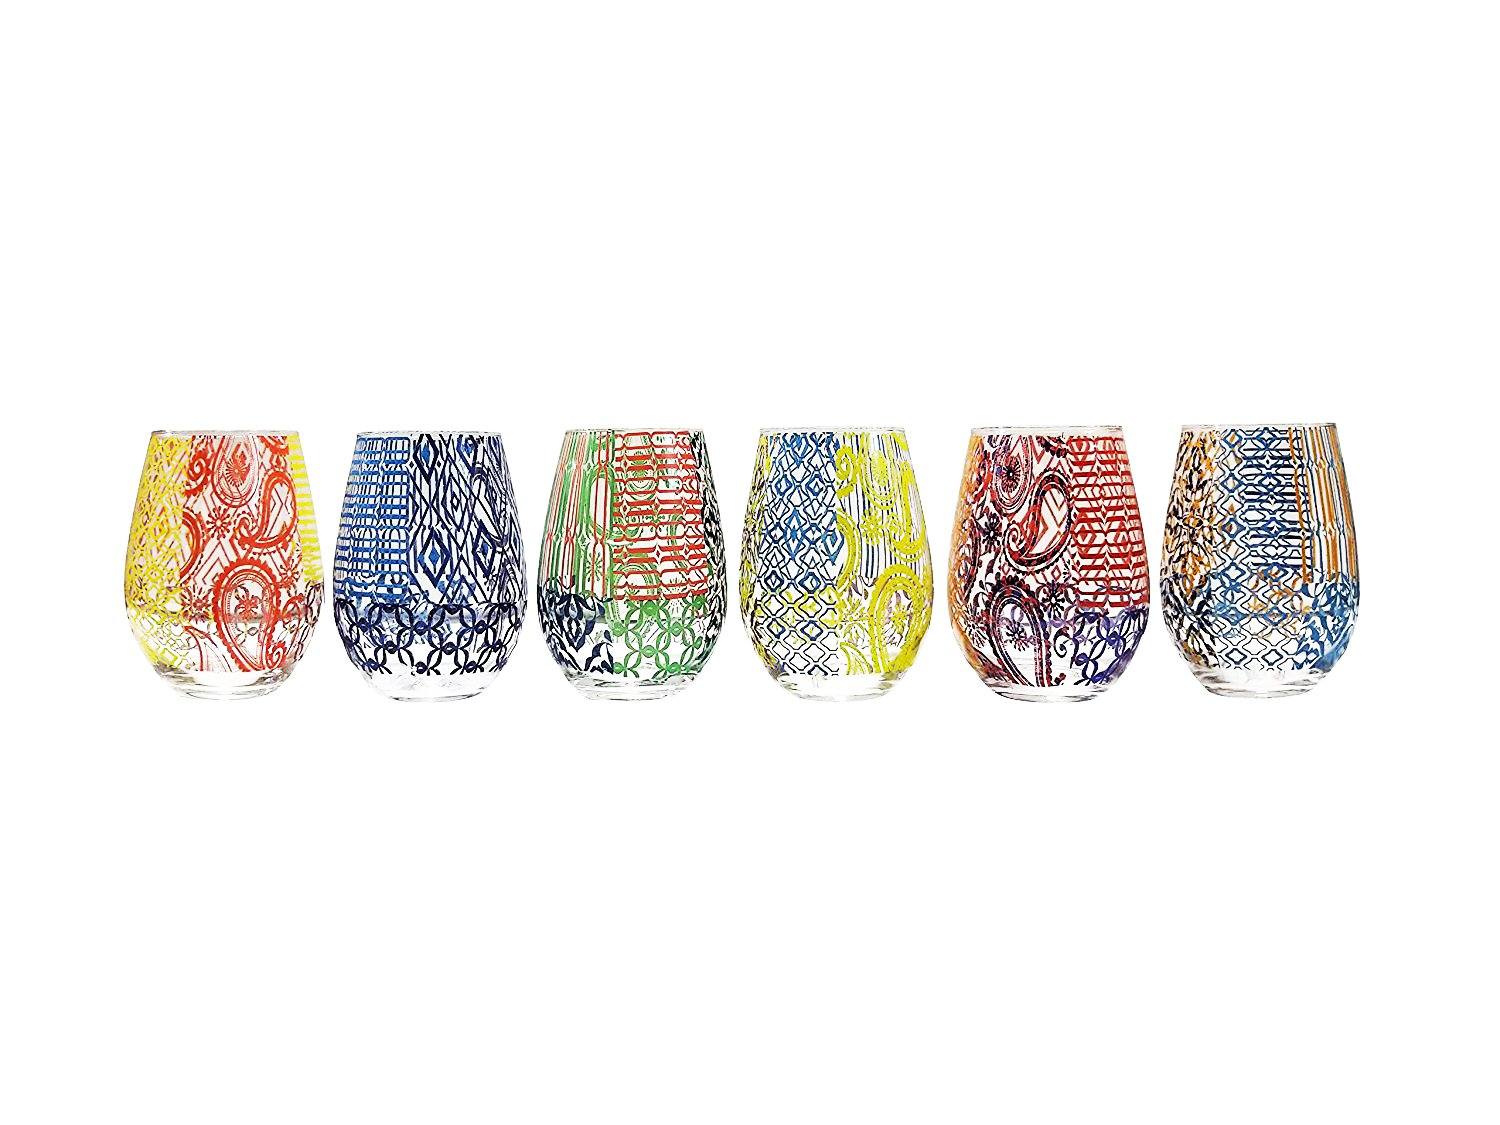 Tracy Porter 12 Oz. Tracy Porter Boho Chic Colored Party Stemless Wine Goblets Glasses Drinkware, Set of 6 Jay Imports